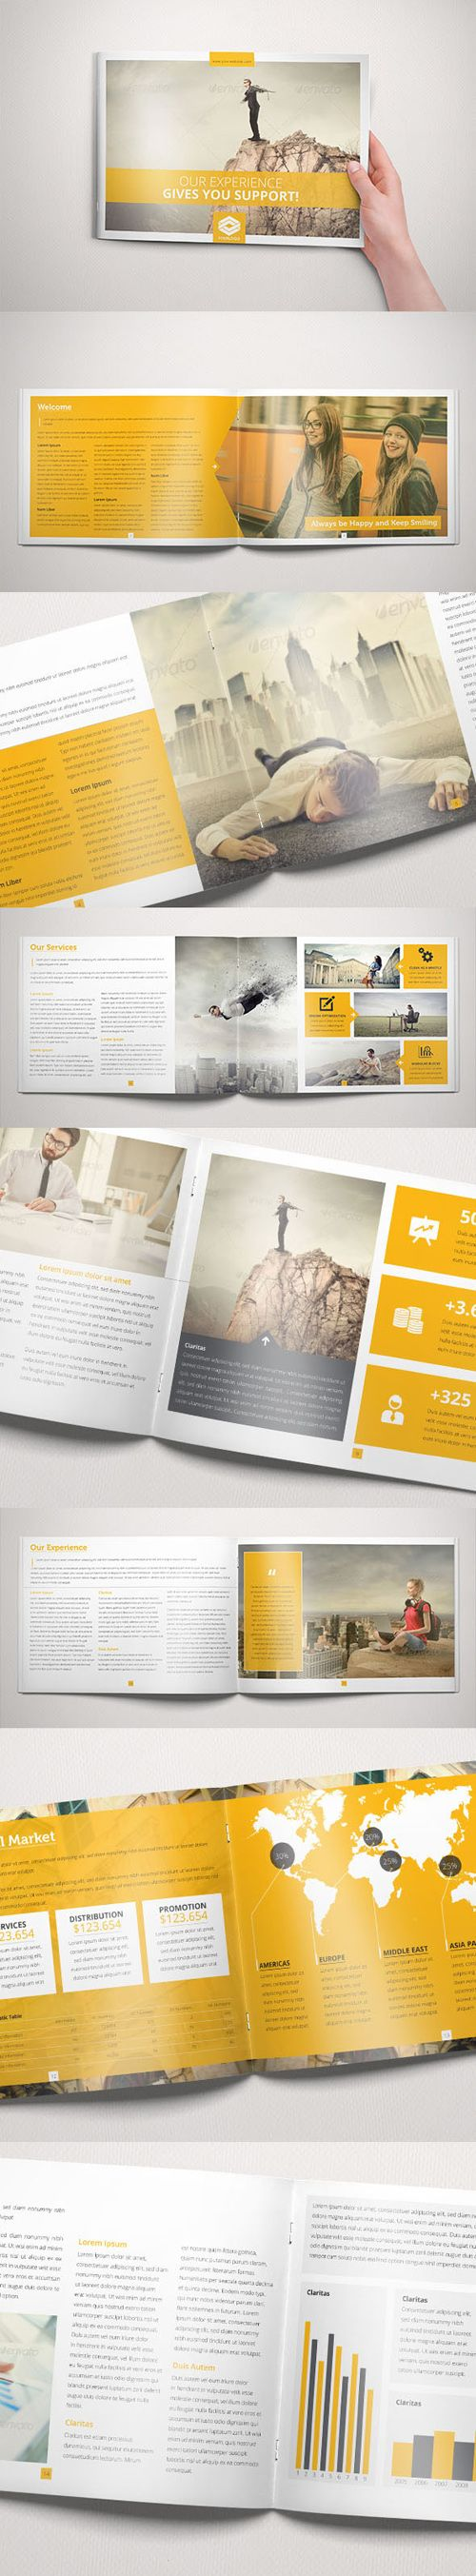 Souvent 193 best Brochure Design & Layout images on Pinterest | Brochure  HO73